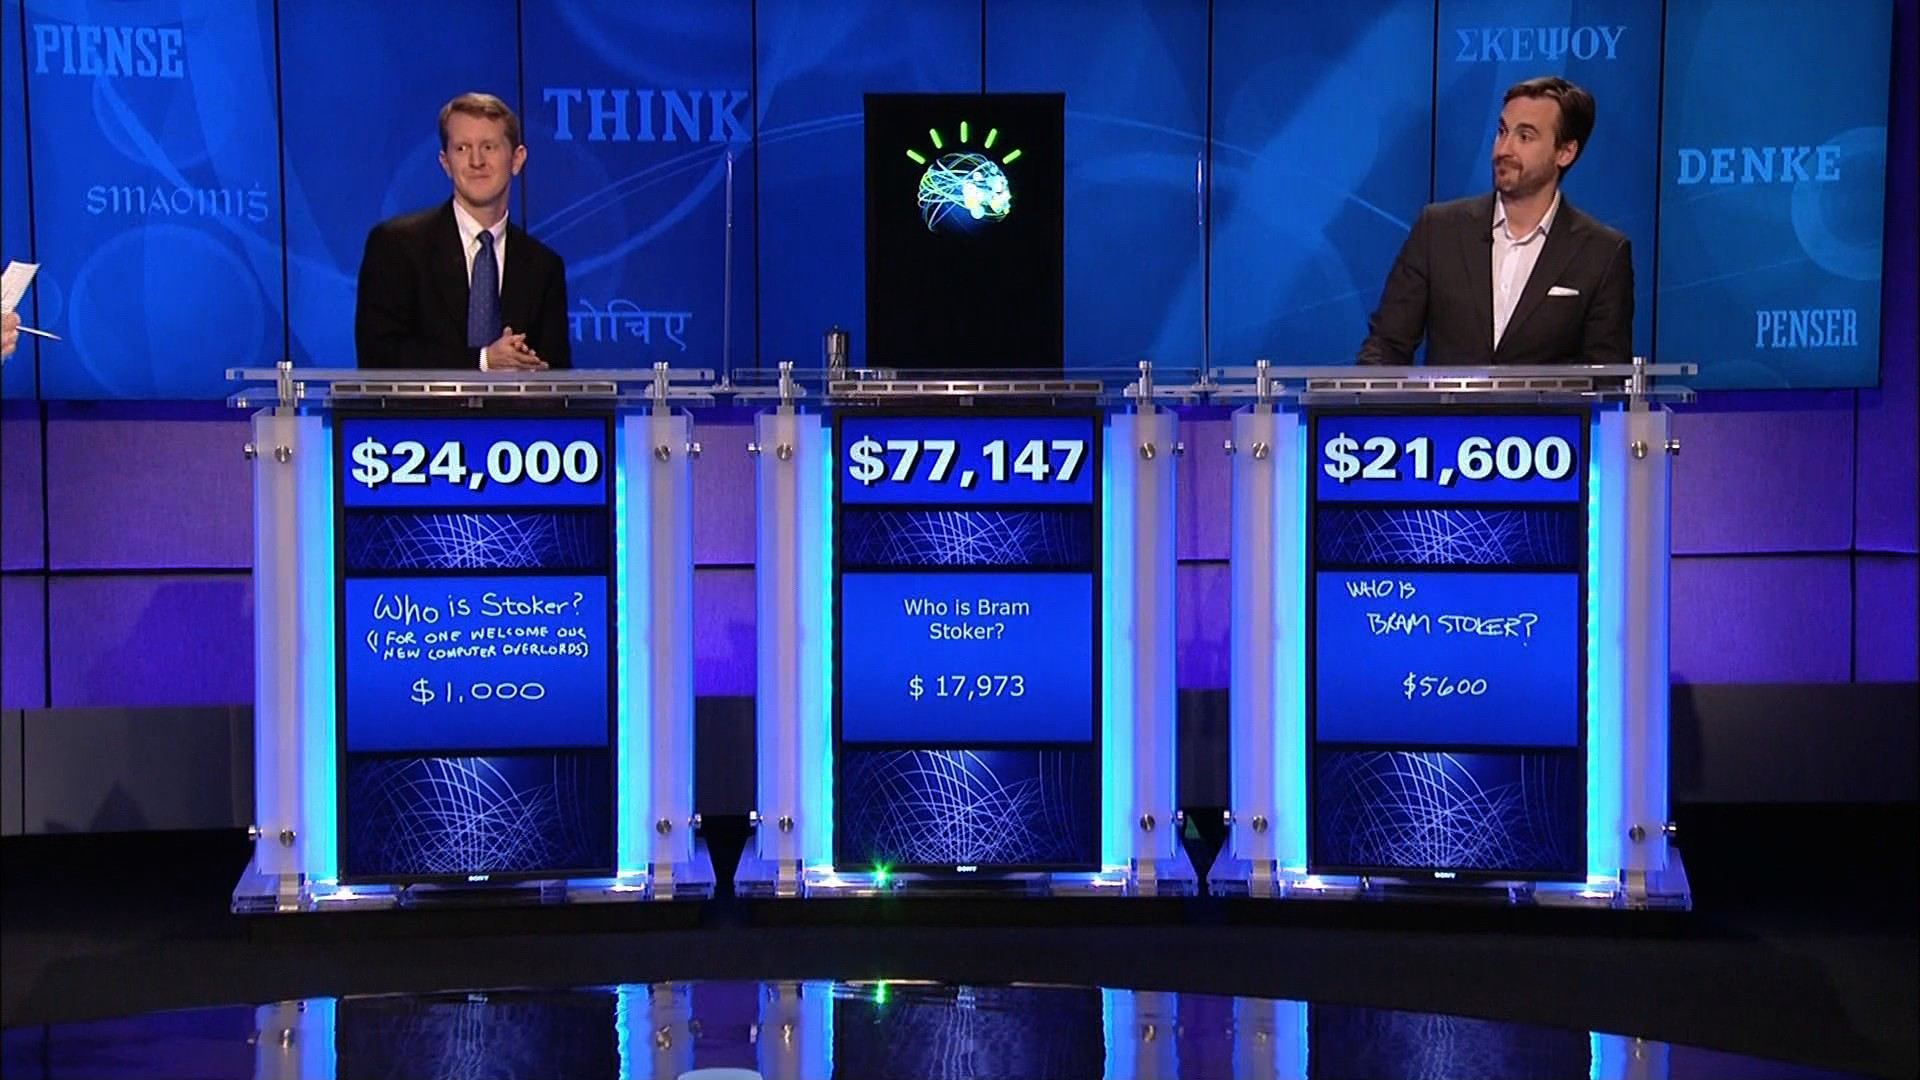 watson_the_computer_beats_ken_jennings_and_brad_rutter_at_jeopardy_full.jpg